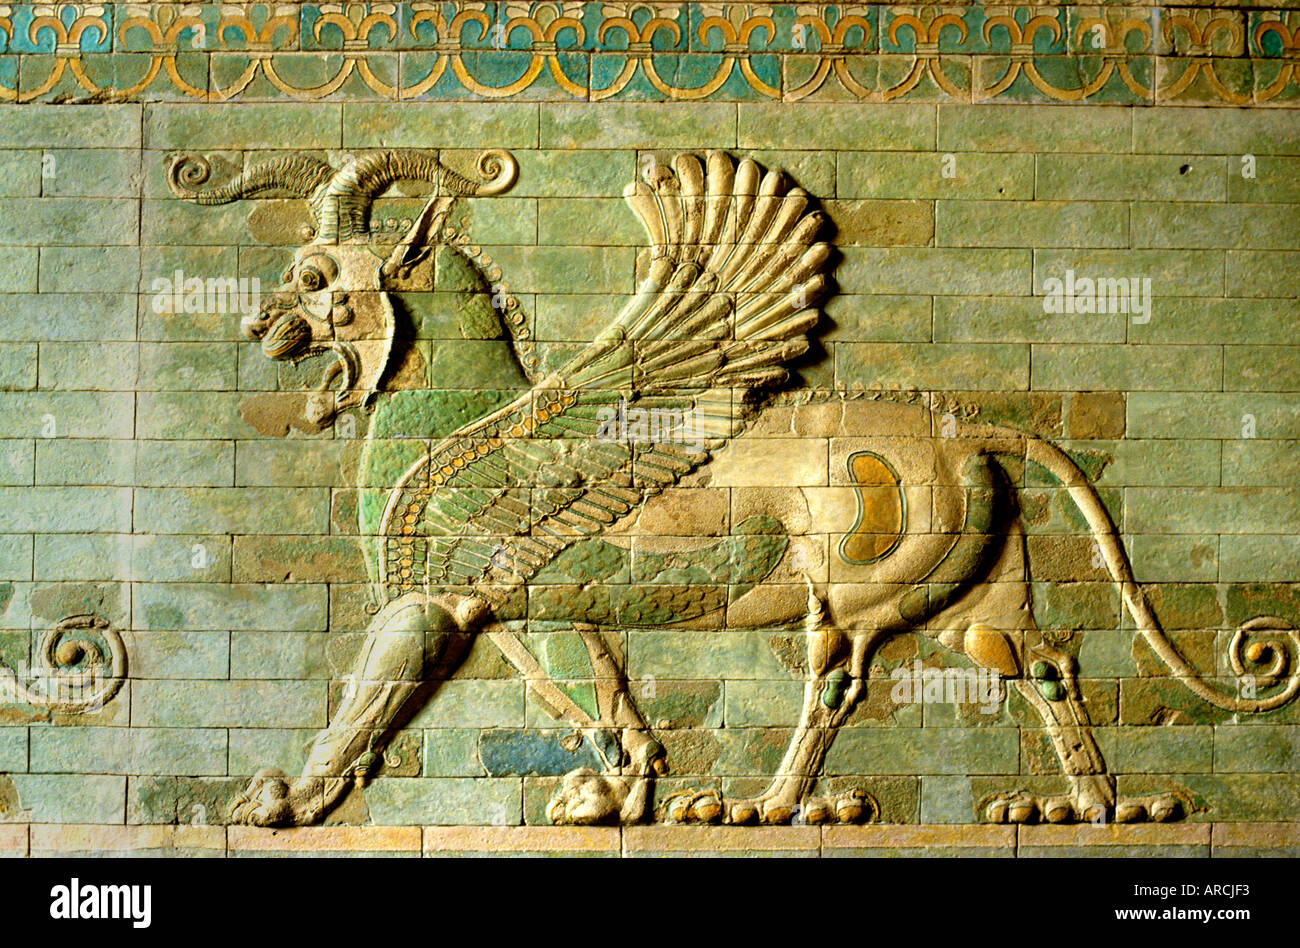 Mesopotamie Darius the Great Persian Emperor from 521 BC to 486/485 ...